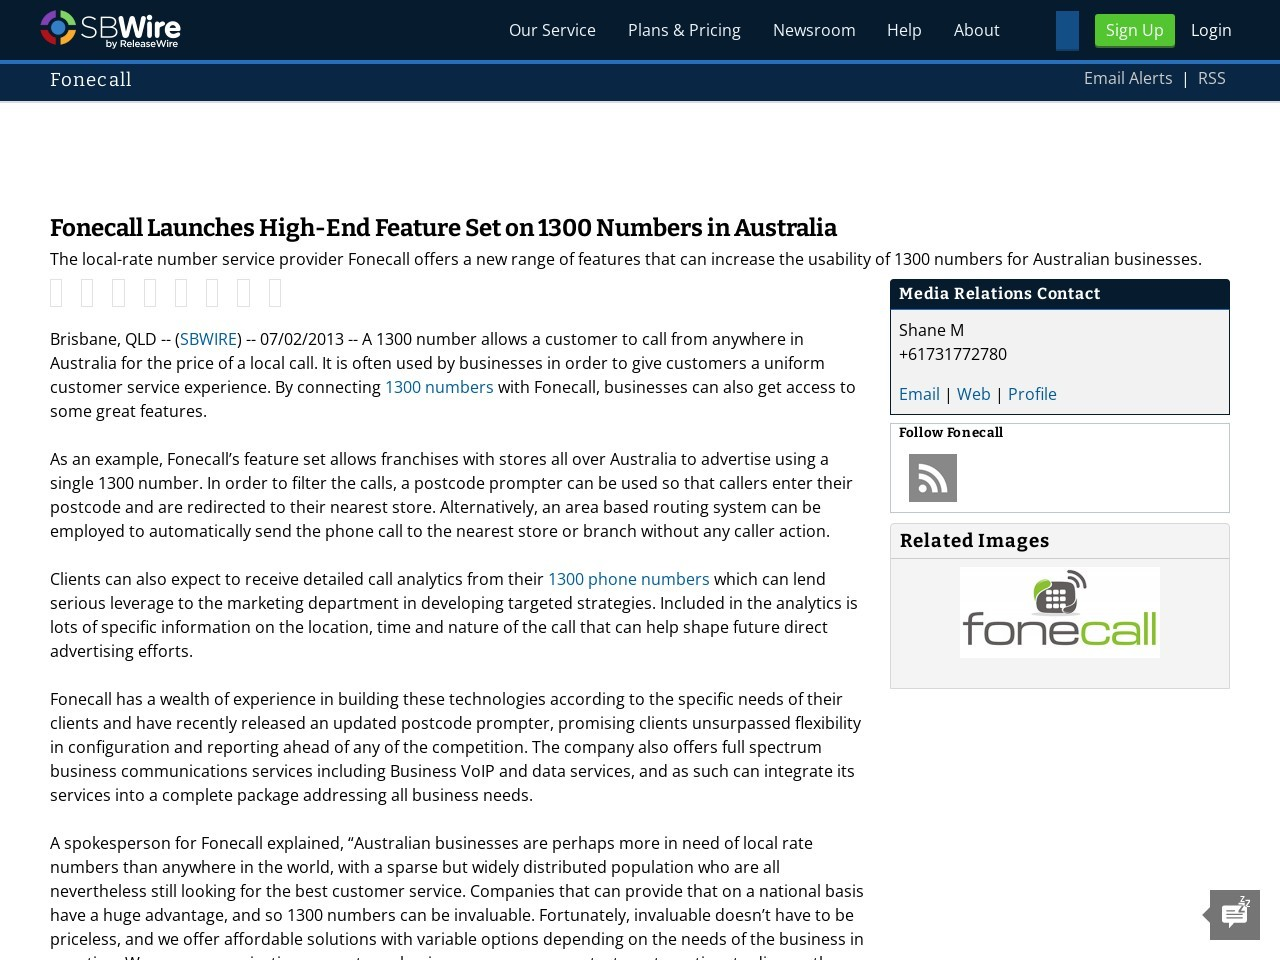 Fonecall Launches High-End Feature Set on 1300 Numbers in Australia